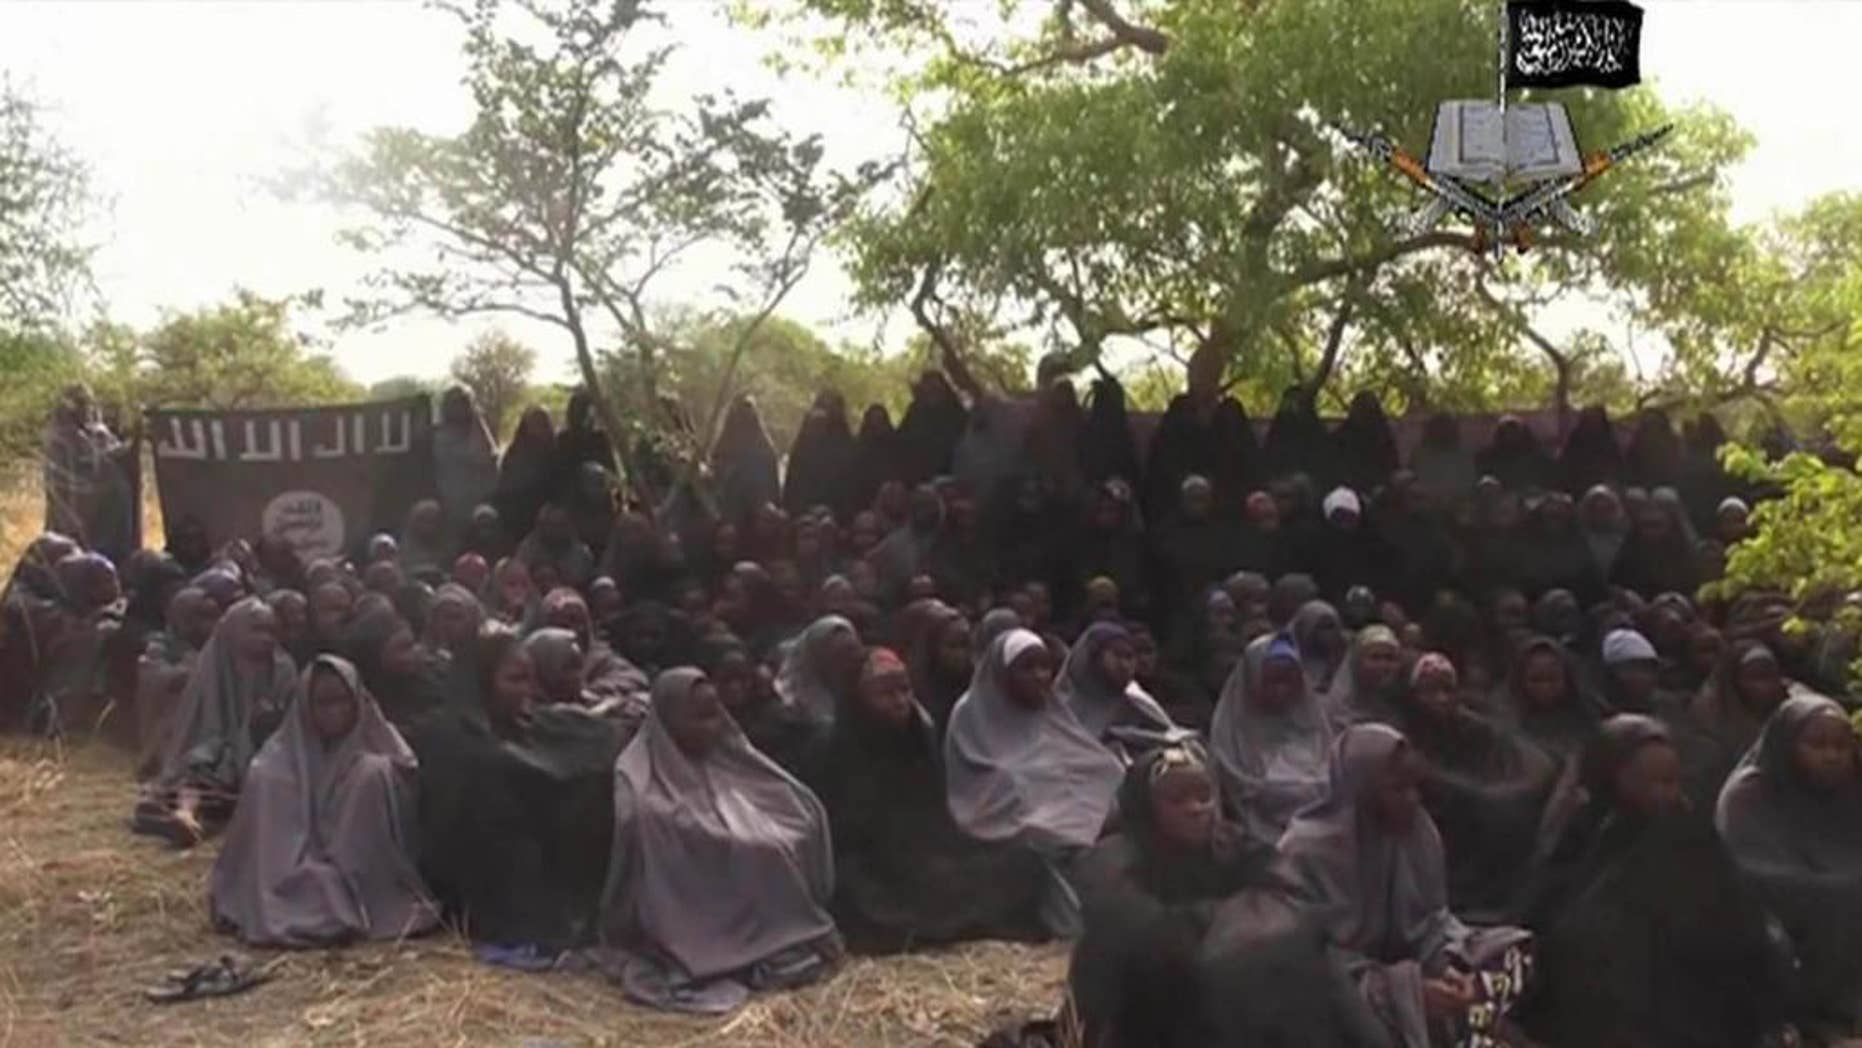 FILE - This Monday May 12, 2014 file image taken from video by Nigeria's Boko Haram terrorist network, shows the alleged missing girls abducted from the northeastern town of Chibok. Nigeria's government and Islamic extremists from Boko Haram have agreed to an immediate cease-fire, officials said Friday Oct. 17, 2014. The fate of more than 200 missing schoolgirls abducted by the insurgents six months ago remains unclear. Defense Ministry spokesman Maj. Gen. Chris Olukolade said their release is still being negotiated. (AP Photo/File)